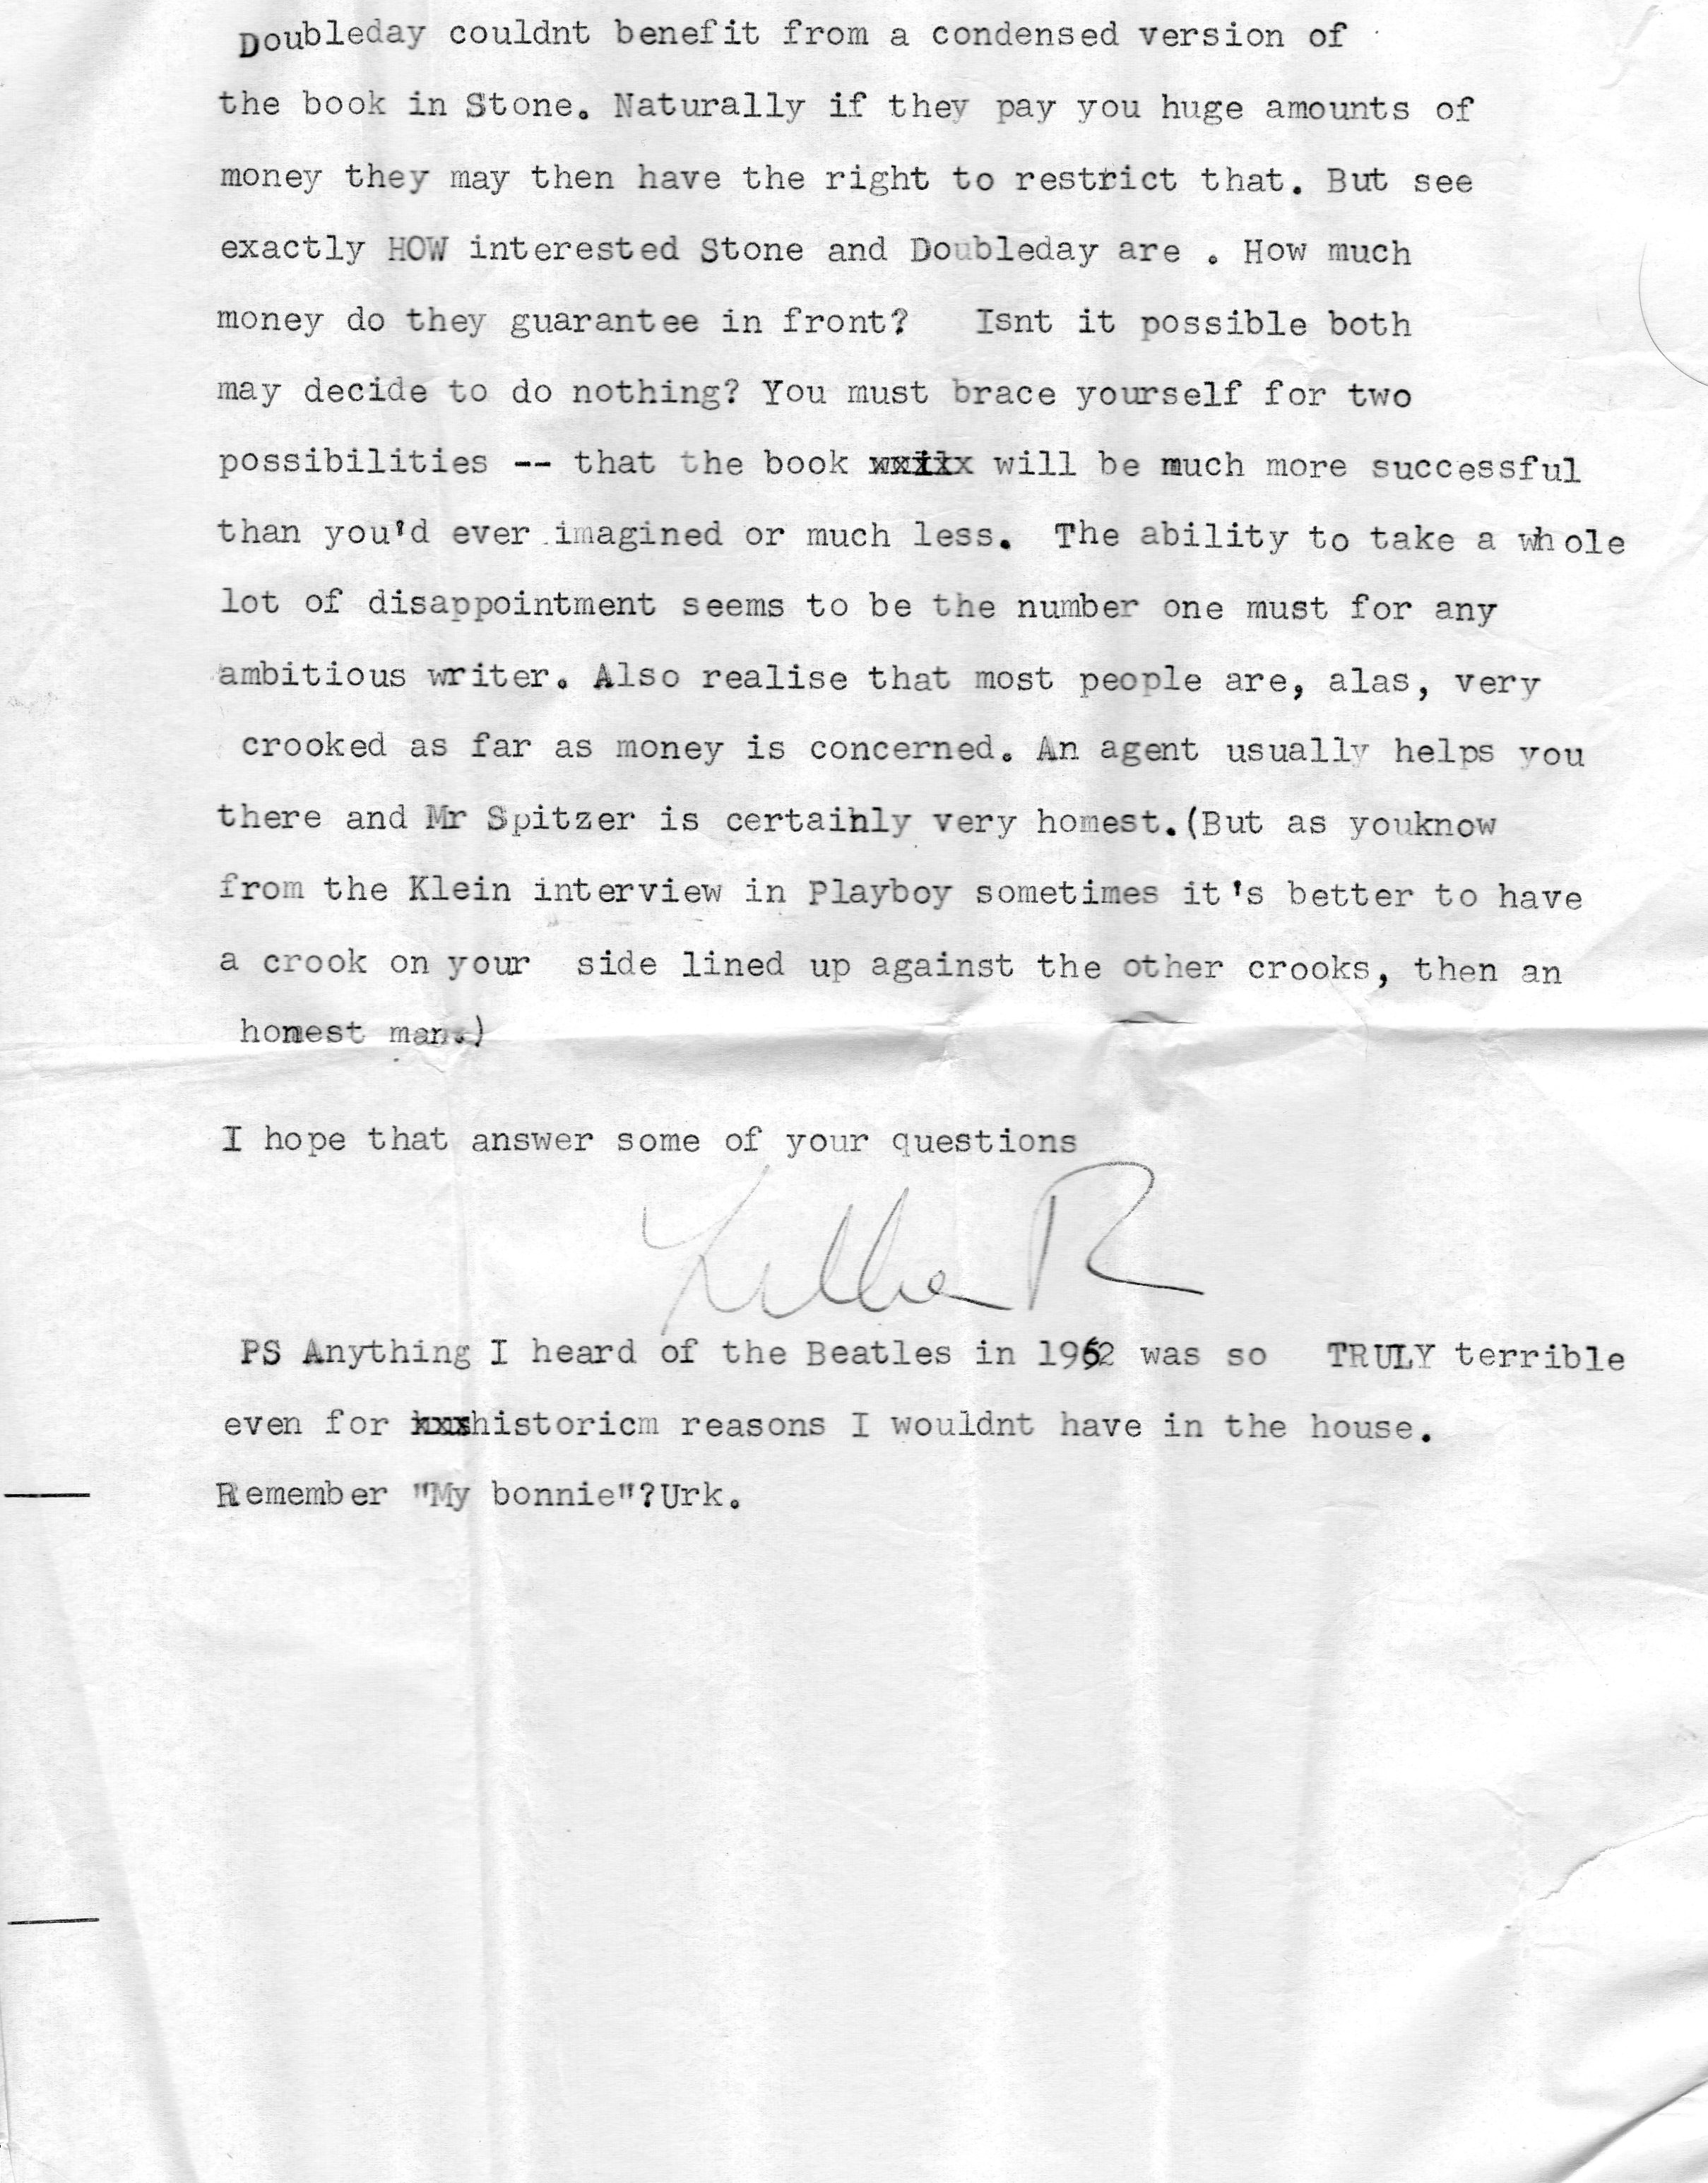 Lillian Roxon letter with Beatles' Decca audition reference